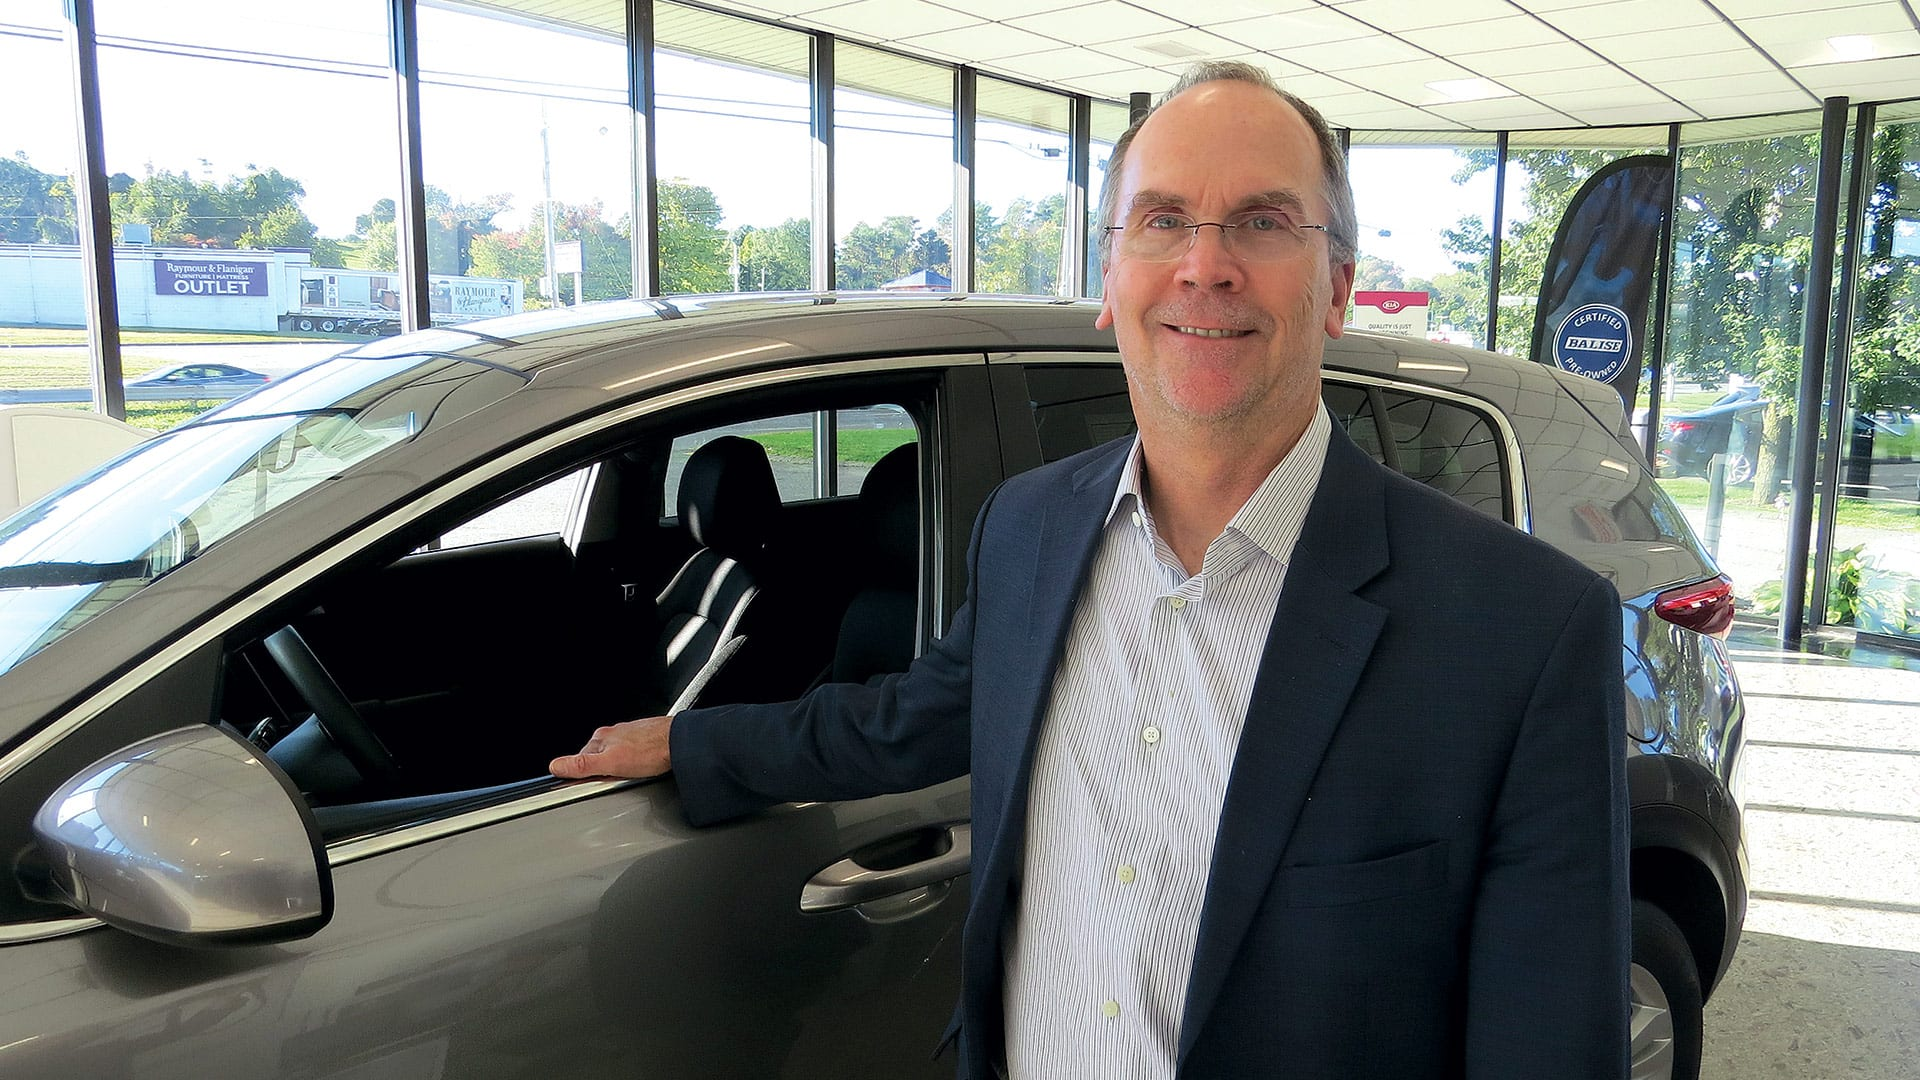 Jeb Balise, seen here at his company's Kia dealership on Riverdale Street